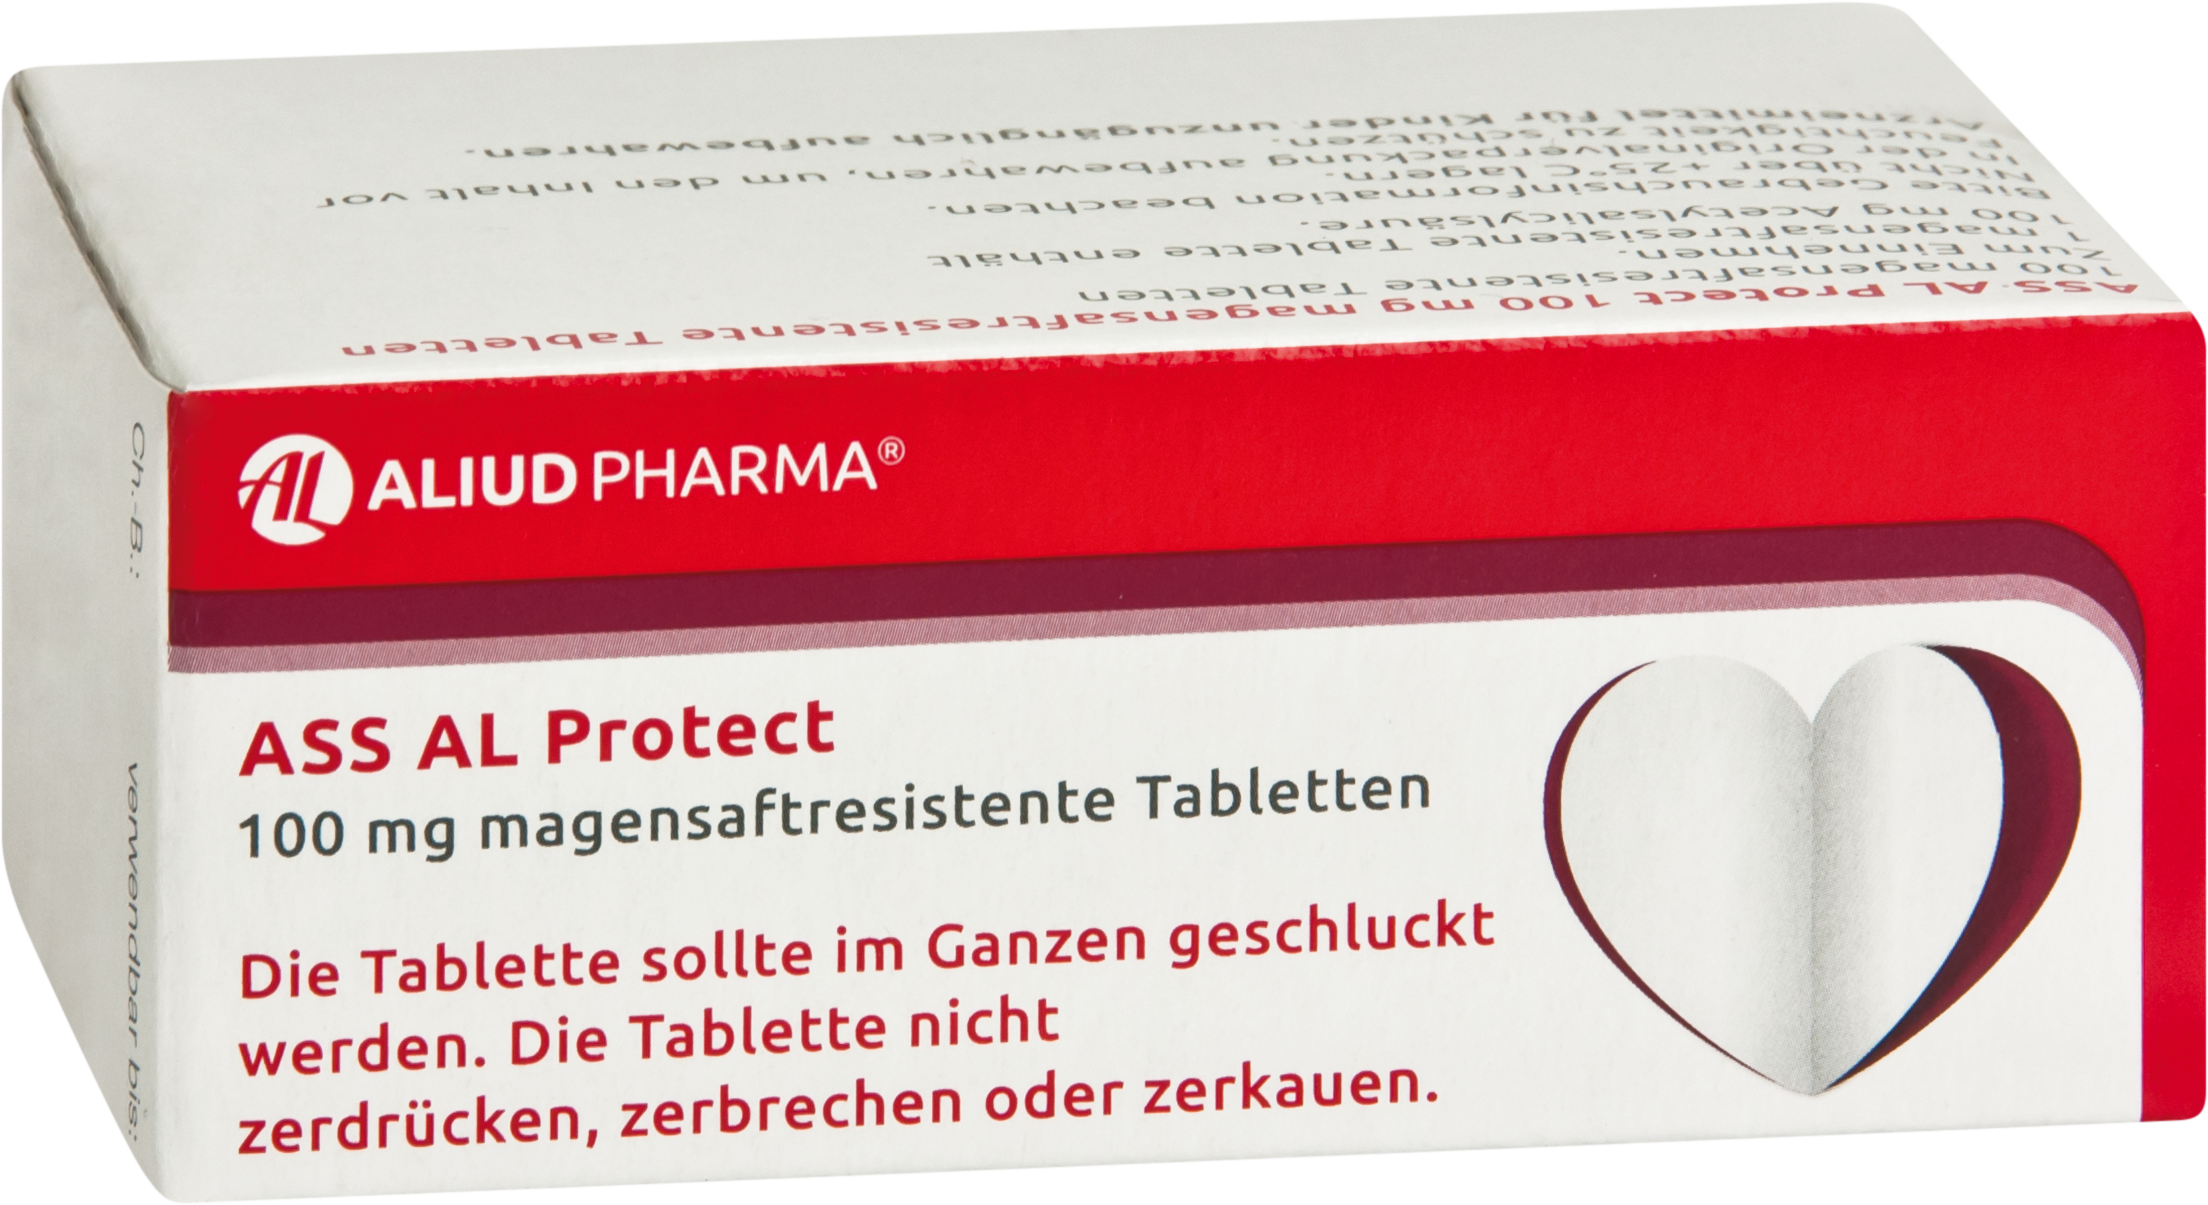 ASS AL Protect 100mg magensaftresistente Tabletten